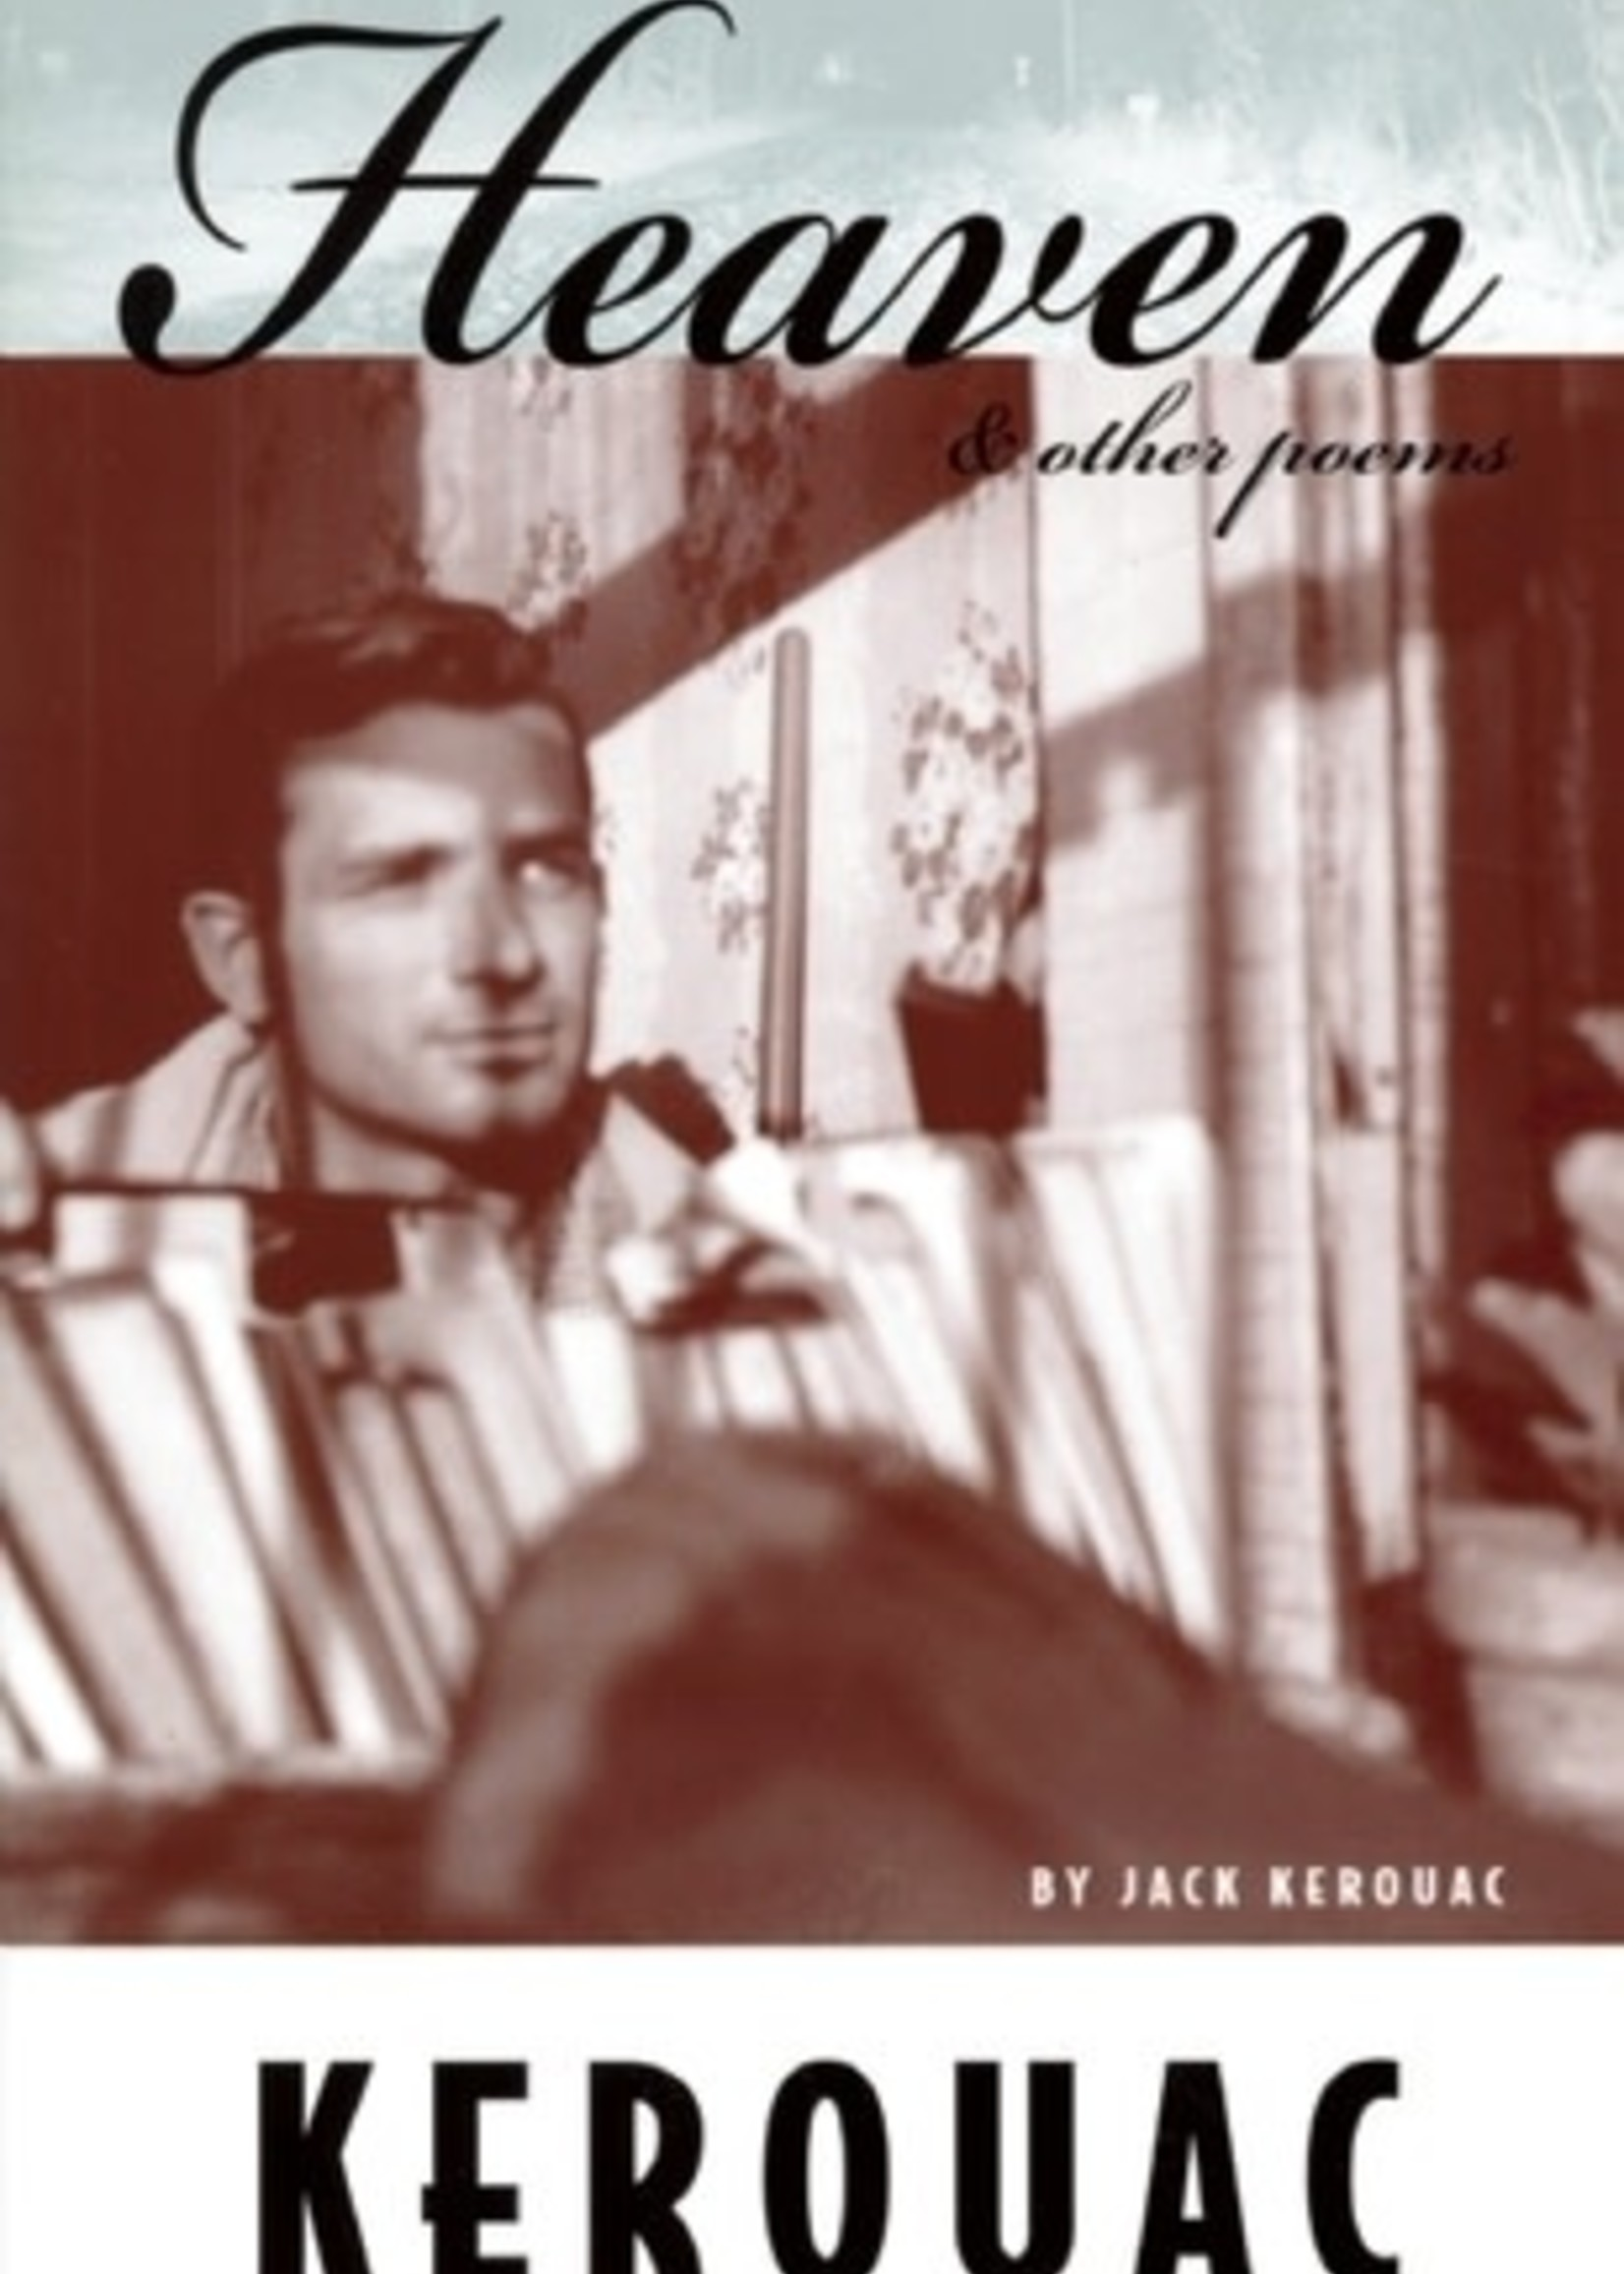 Heaven & Other Poems by Jack Kerouac